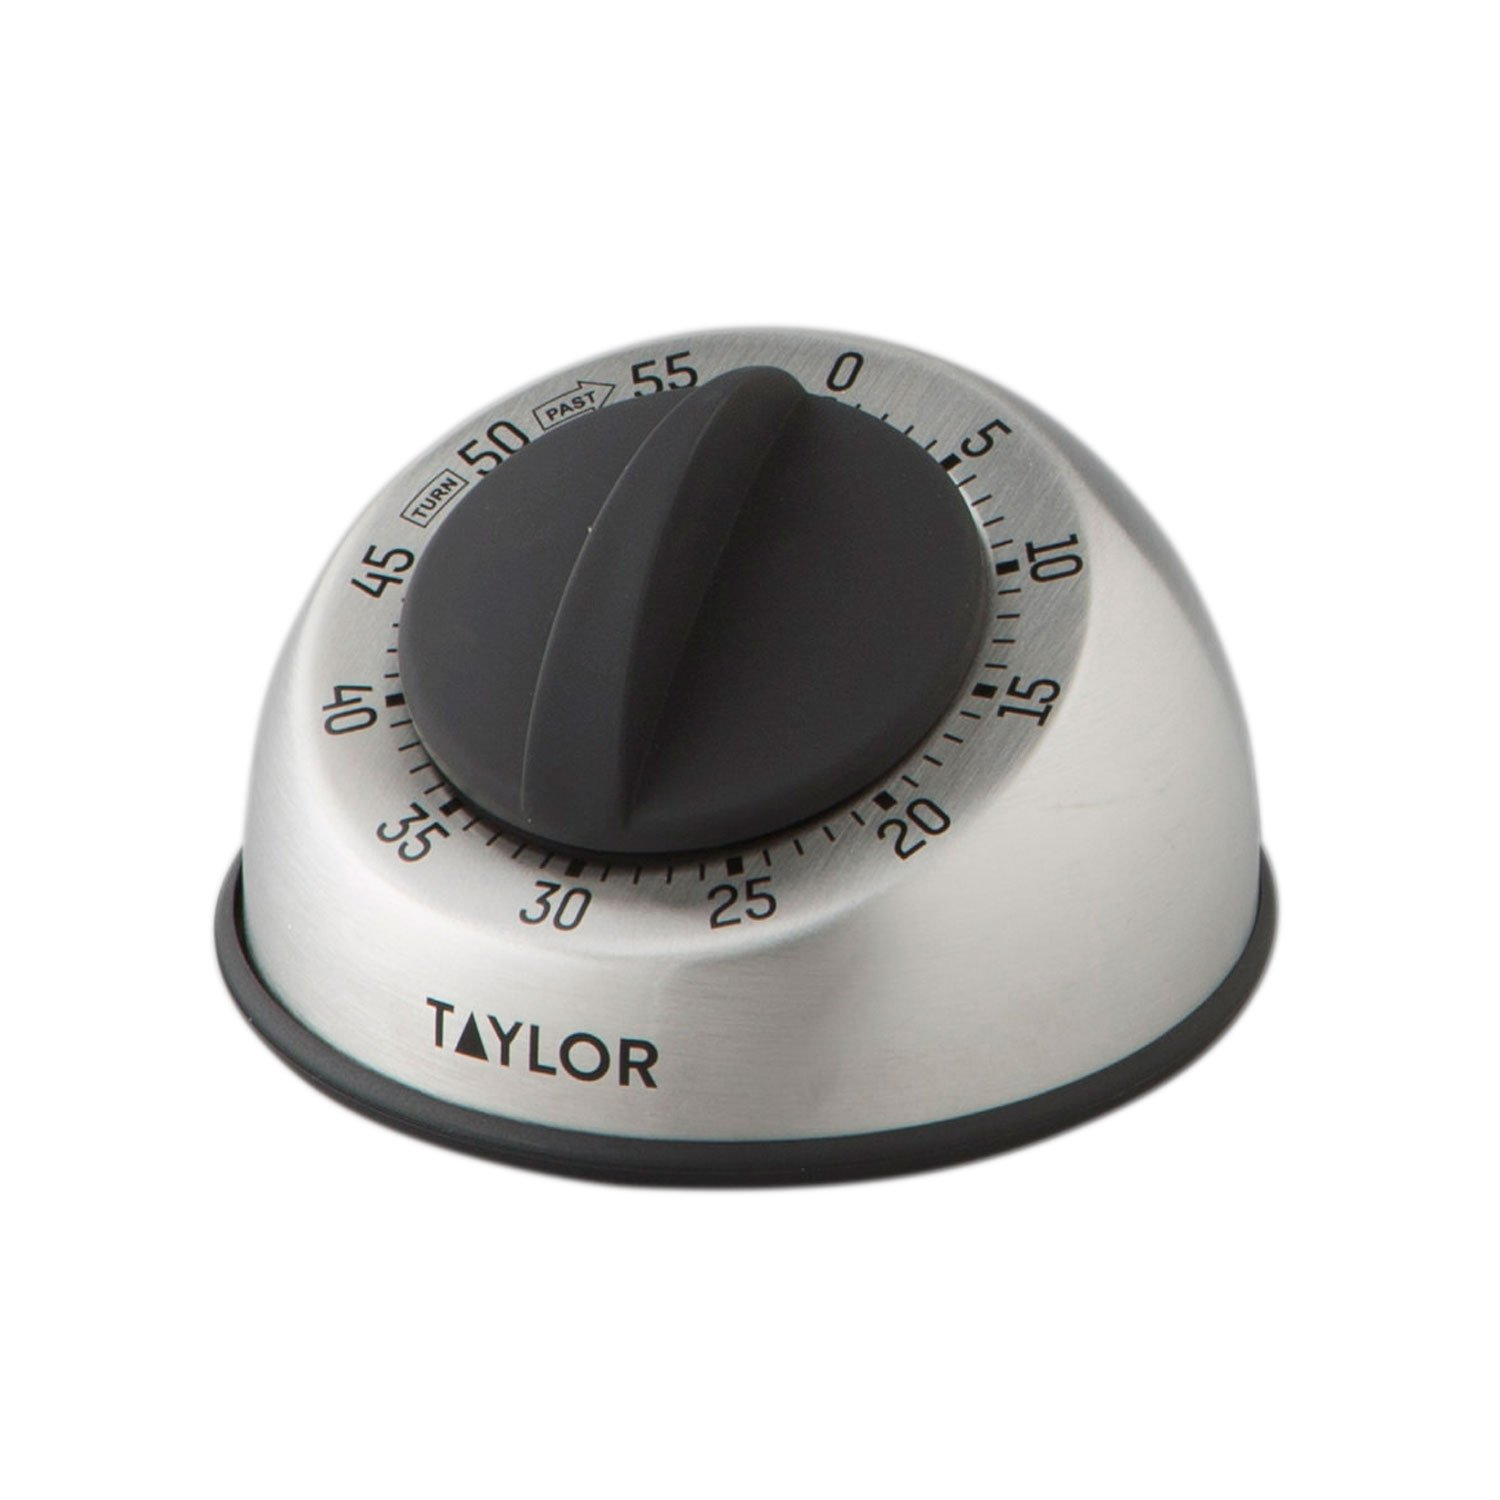 Taylor Precision Products Pro Stainless Steel Mechanical Timer